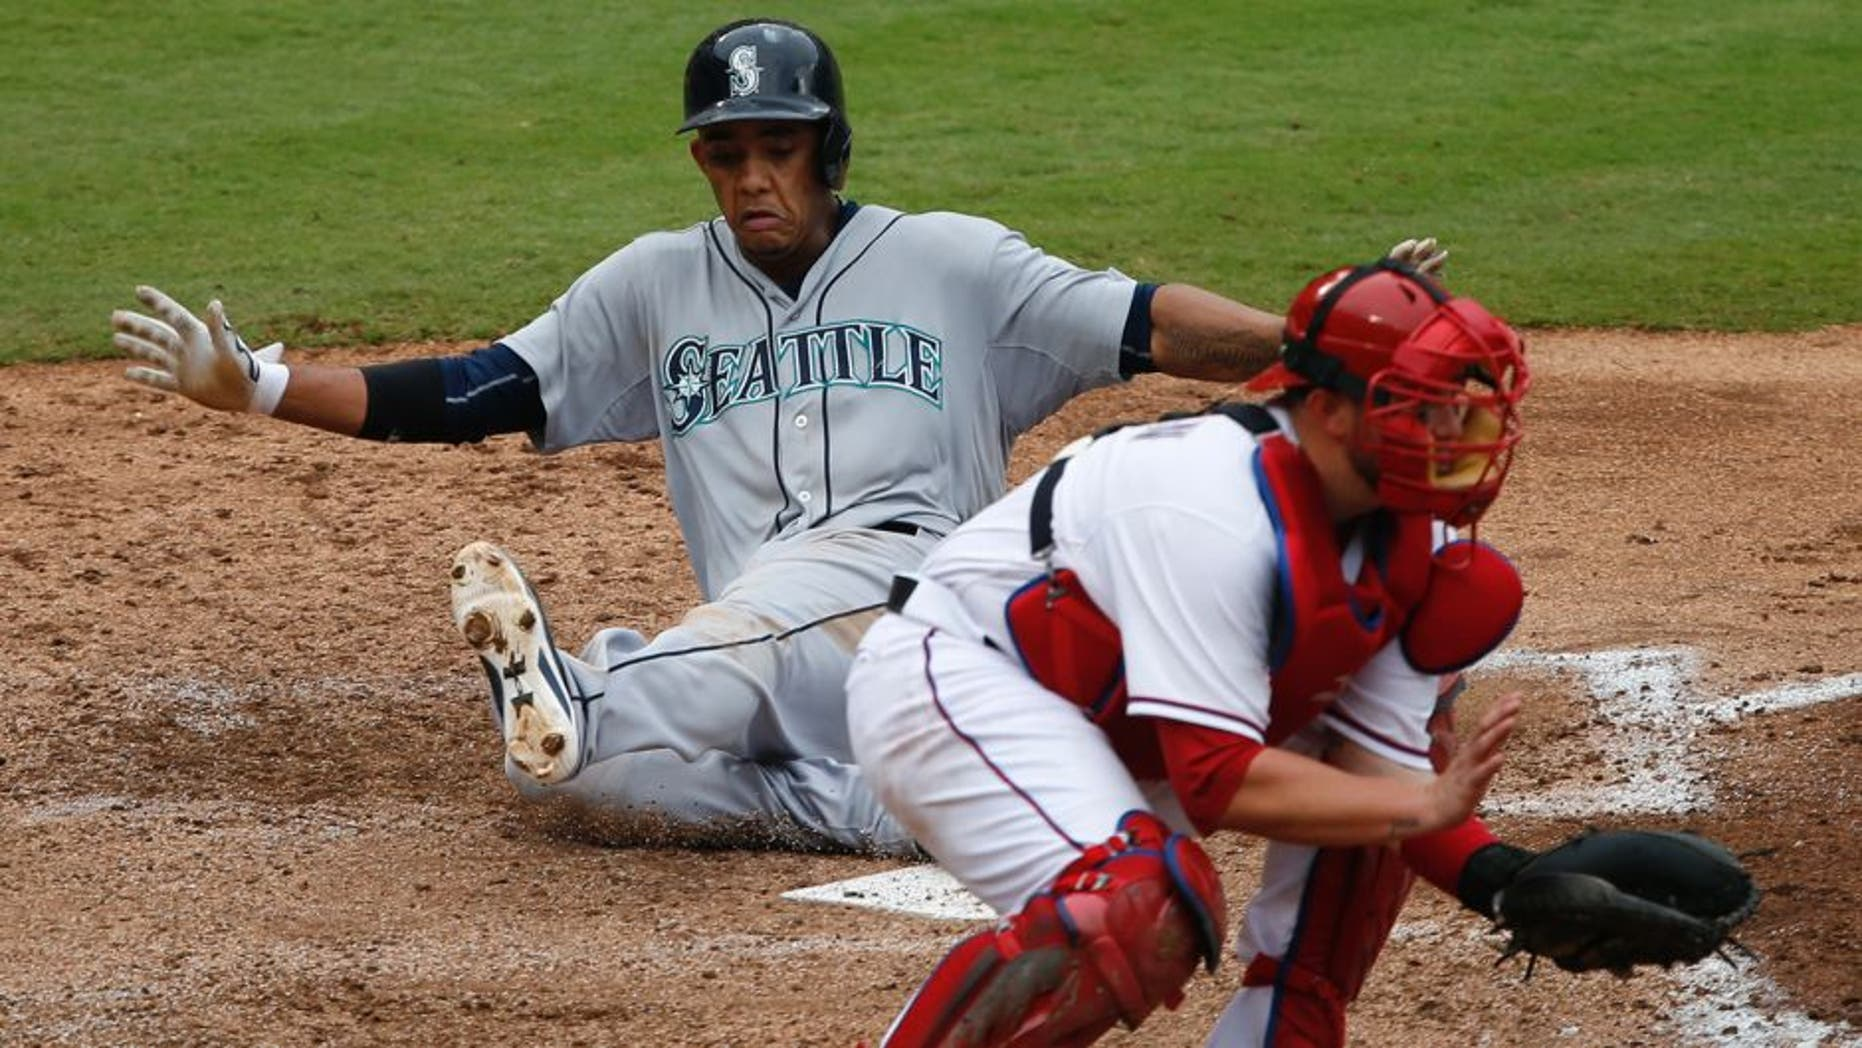 Sep 20, 2015; Arlington, TX, USA; Seattle Mariners shortstop Ketel Marte (4) slides to score a run ahead of the throw to Texas Rangers catcher Bobby Wilson (8) during the fifth inning of a baseball game at Globe Life Park in Arlington. Mandatory Credit: Jim Cowsert-USA TODAY Sports